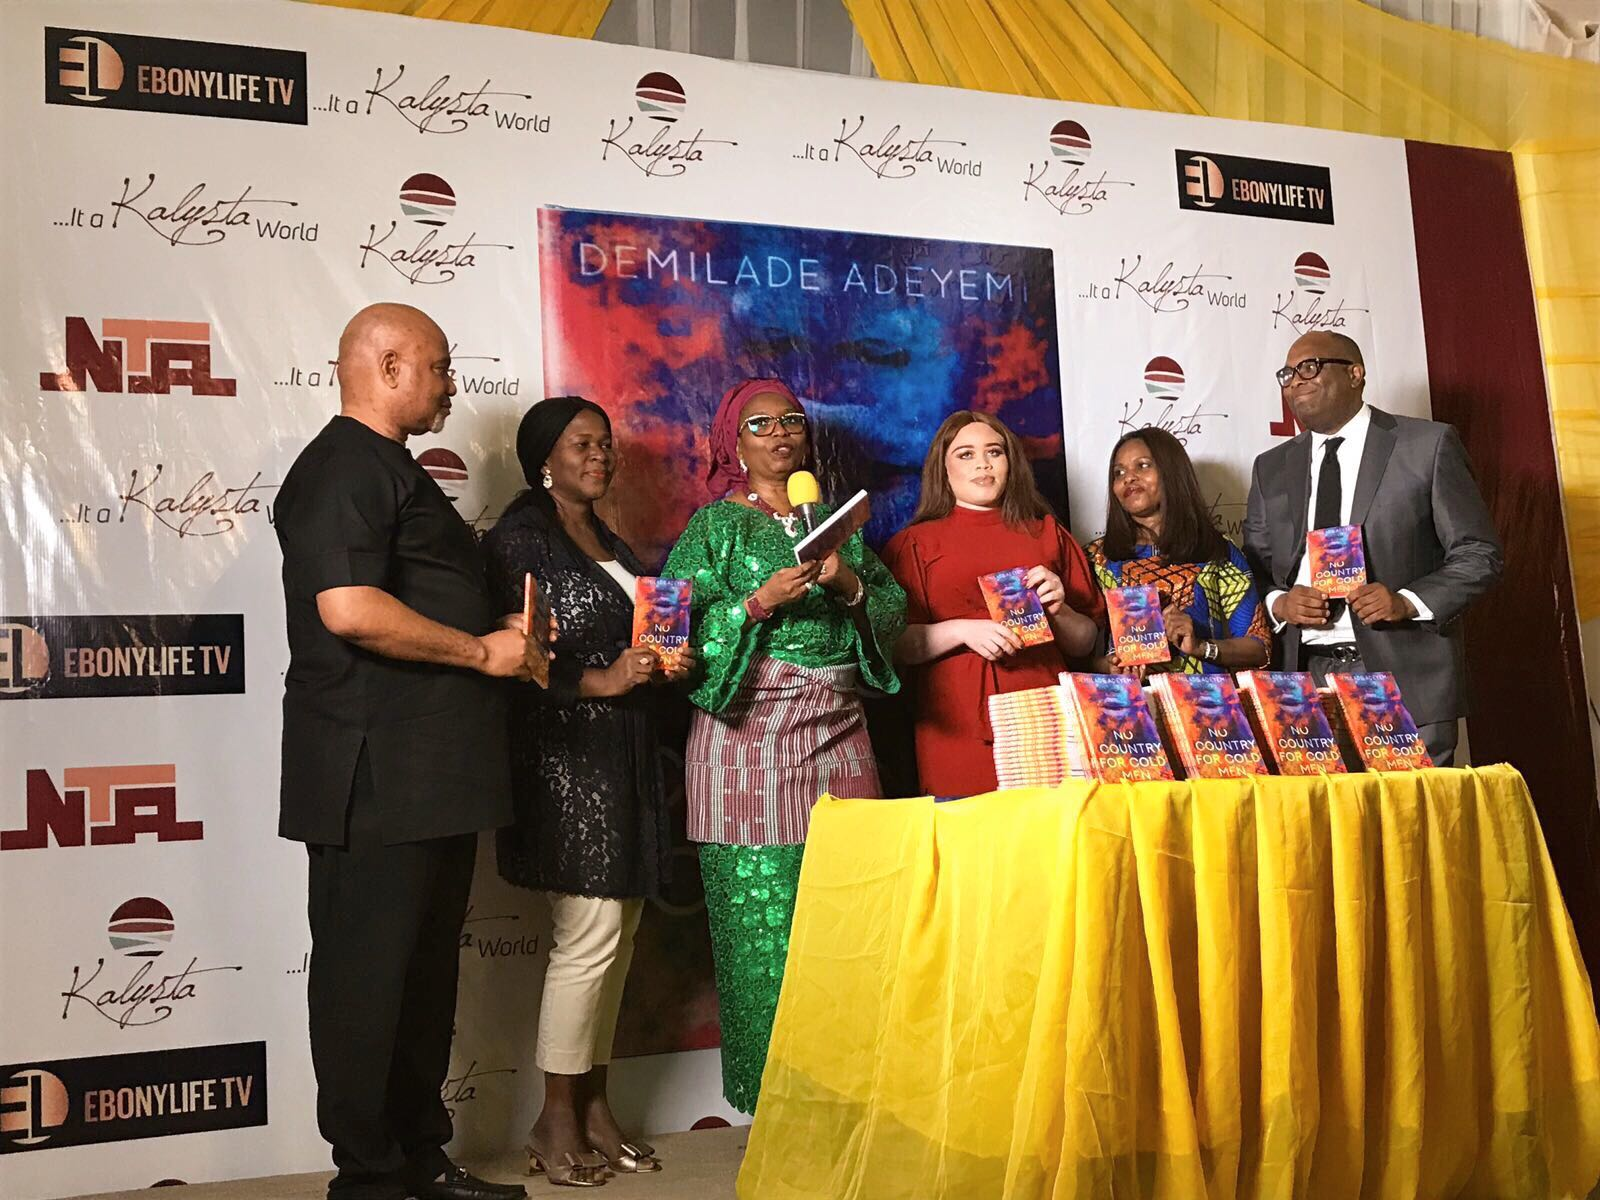 PUBLIC PRESENTATION OF NO COUNTRY FOR COLD MEN by DEMILADE AKINYEMI